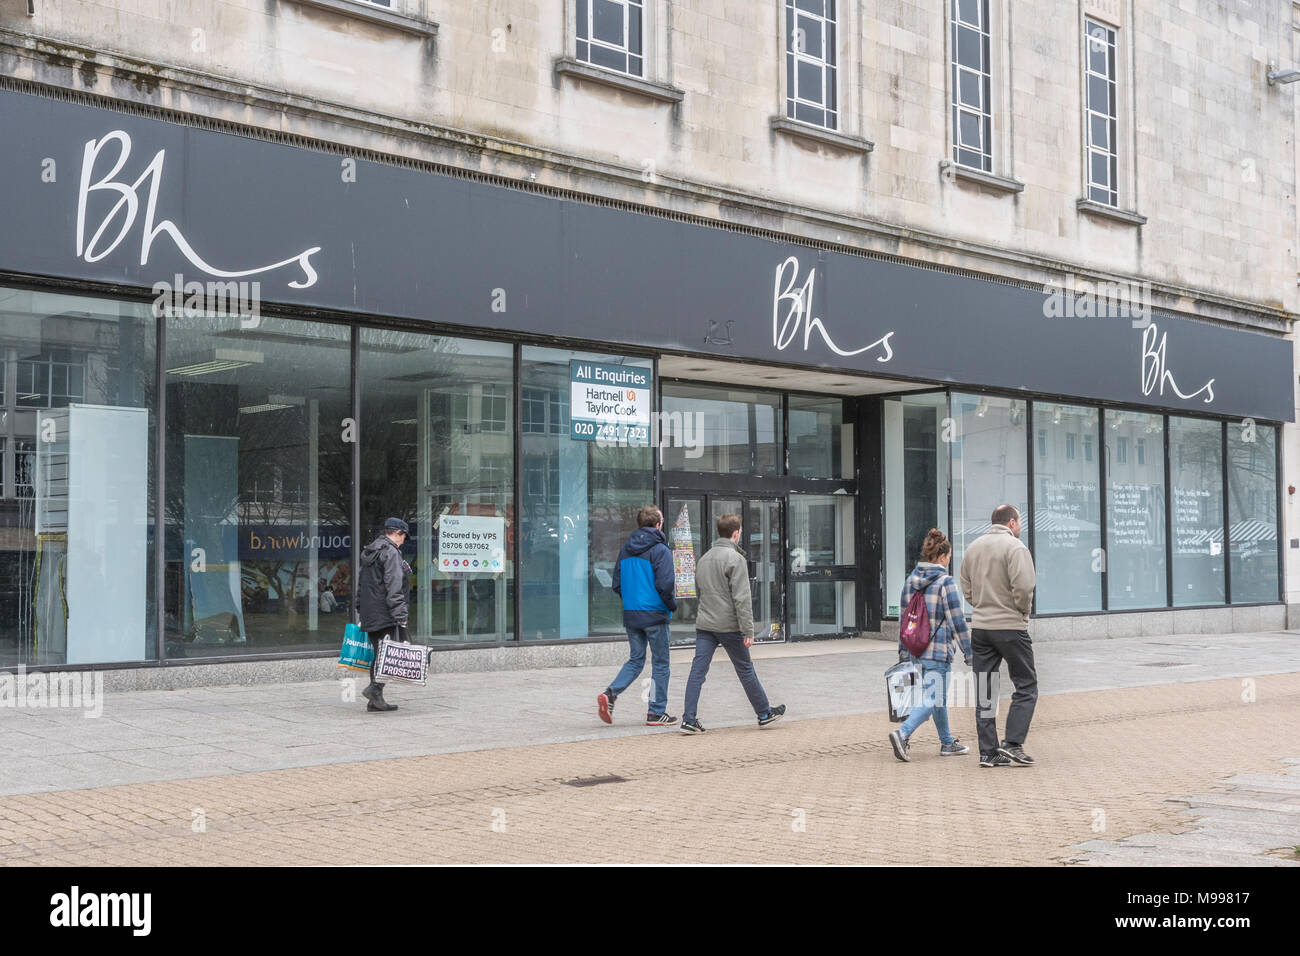 Empty BHS store in Plymouth, Devon, after closing down & liquidation. For struggling high street retailers, death of high street, out of business. Stock Photo